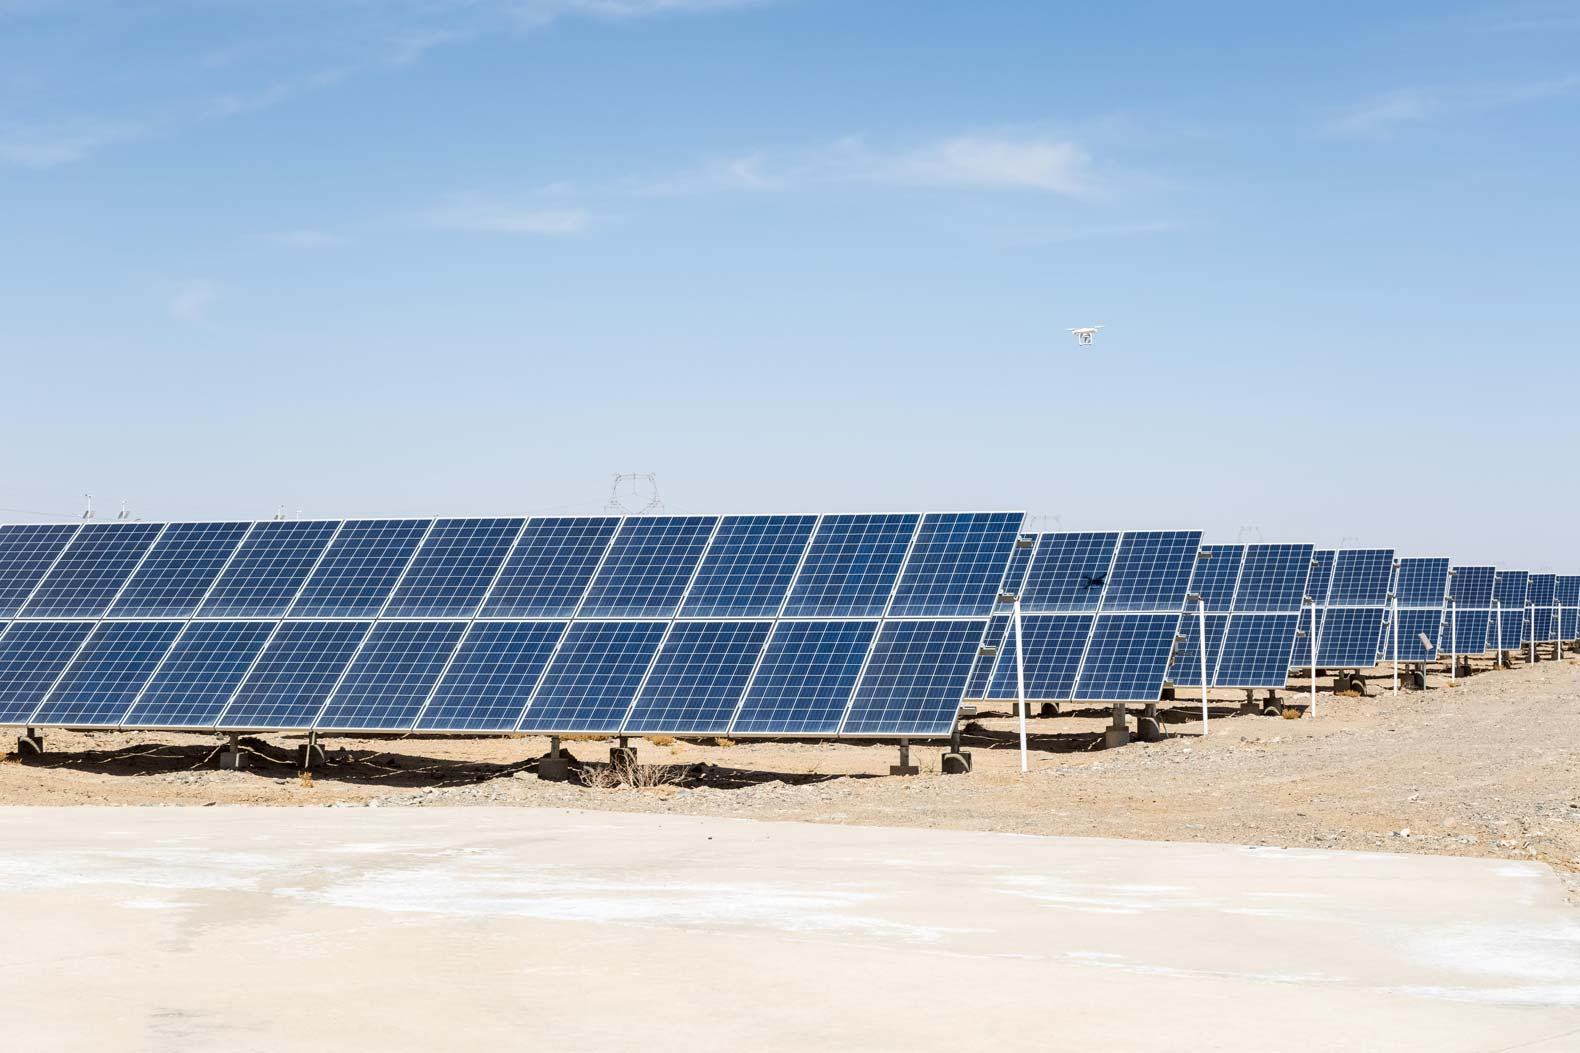 Egypt set to open its first solar farm - and it's the largest in the world